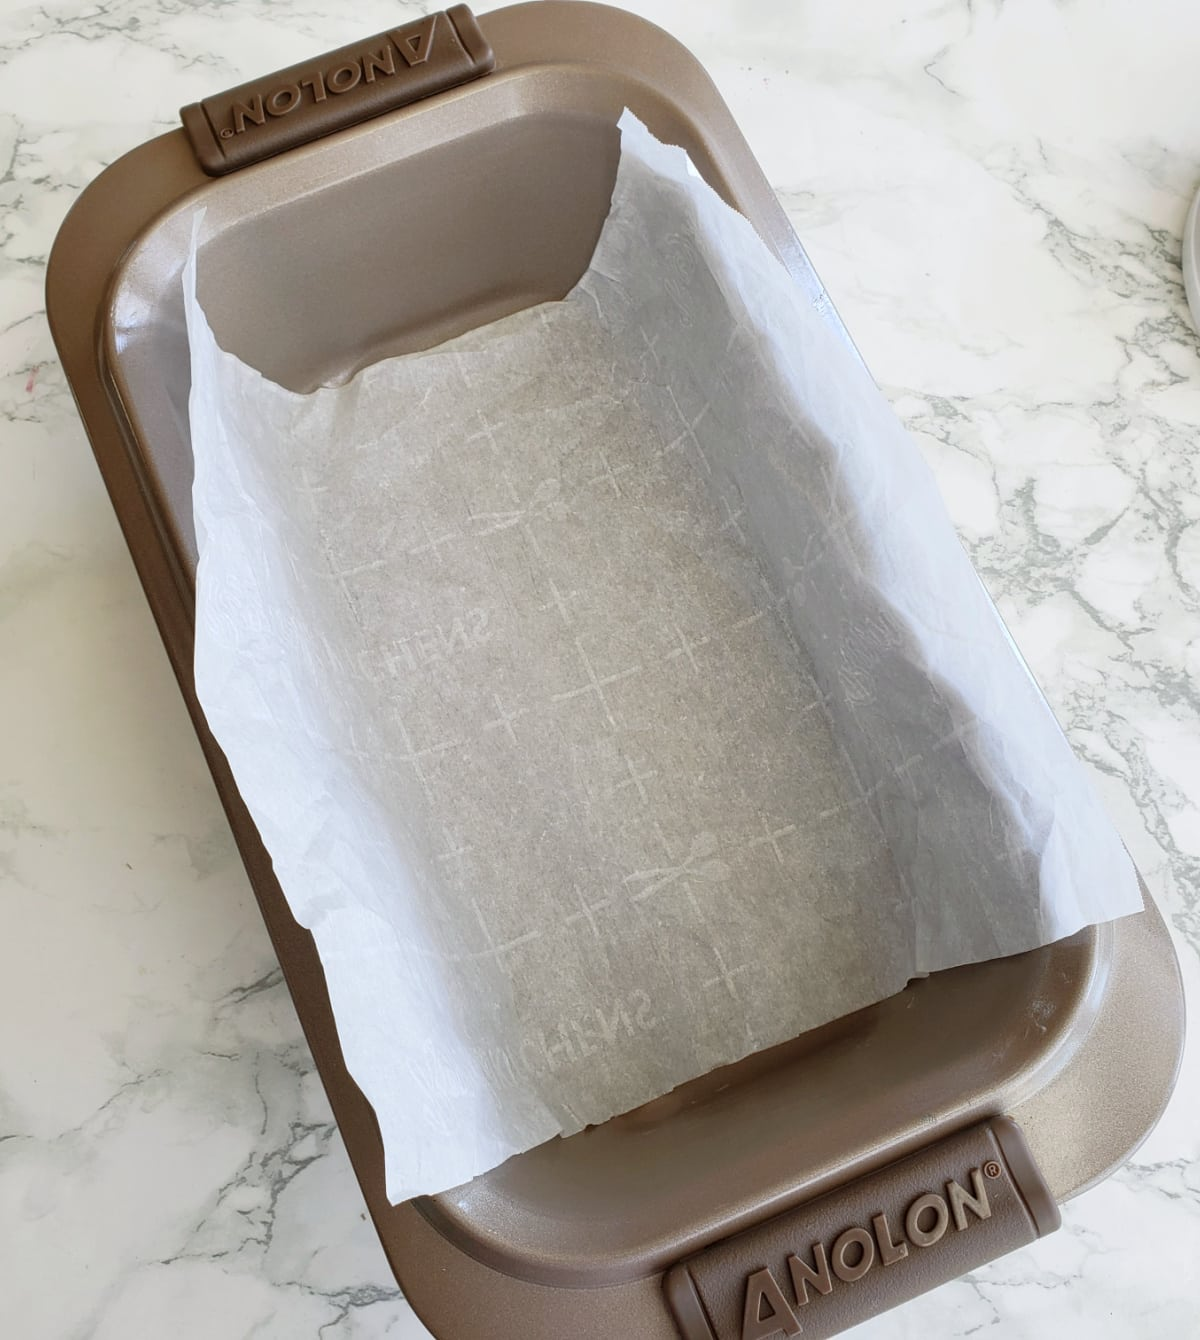 Line the loaf pan with parchment paper